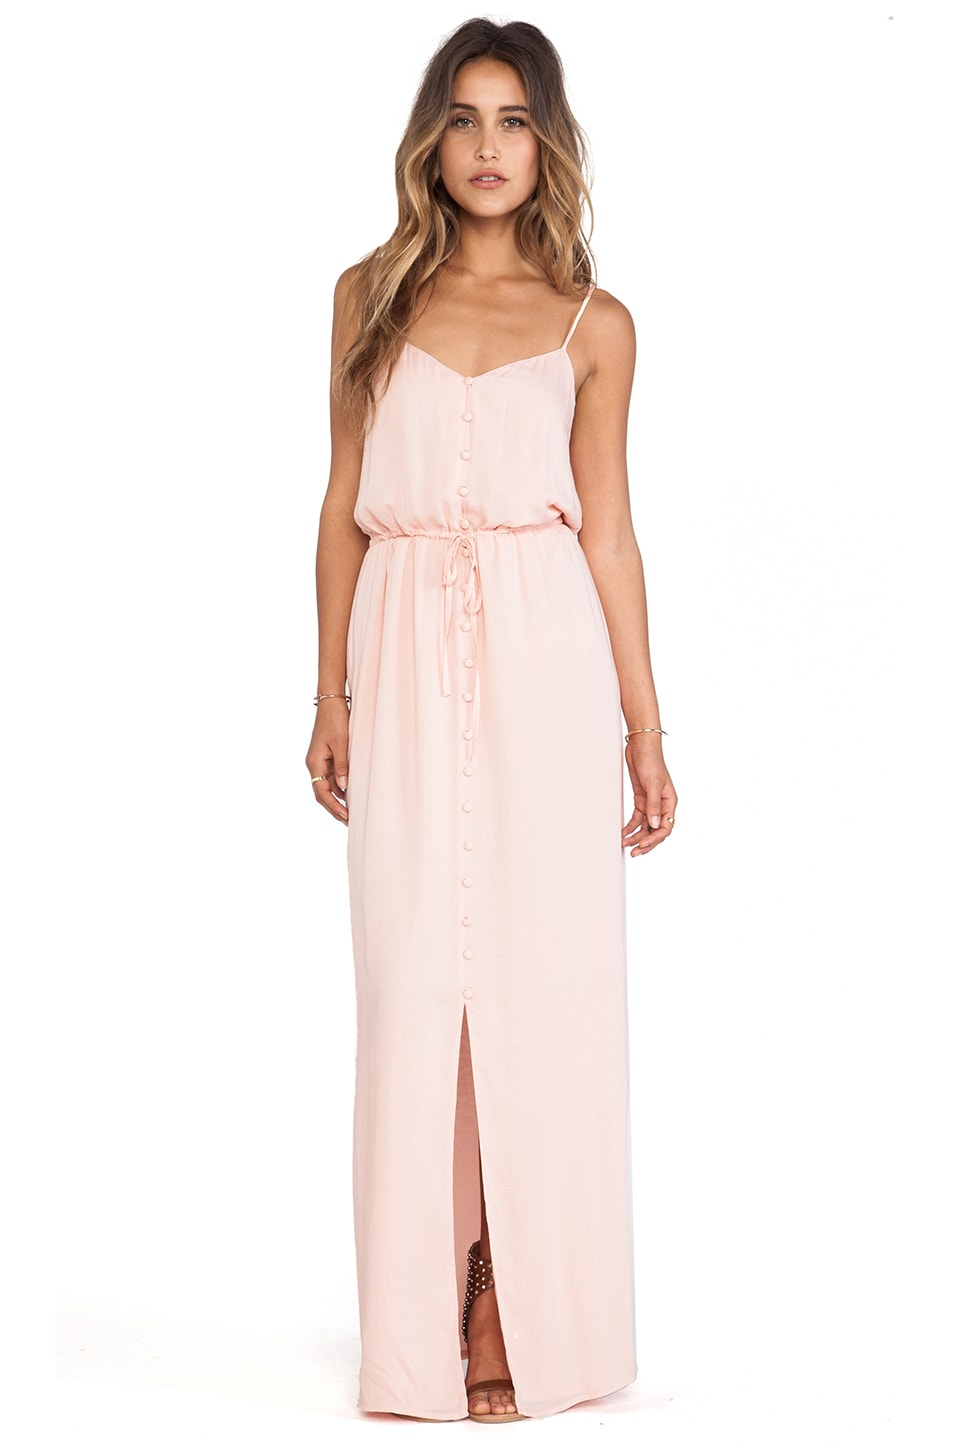 Paige Denim Nina Dress in Ballet Pink